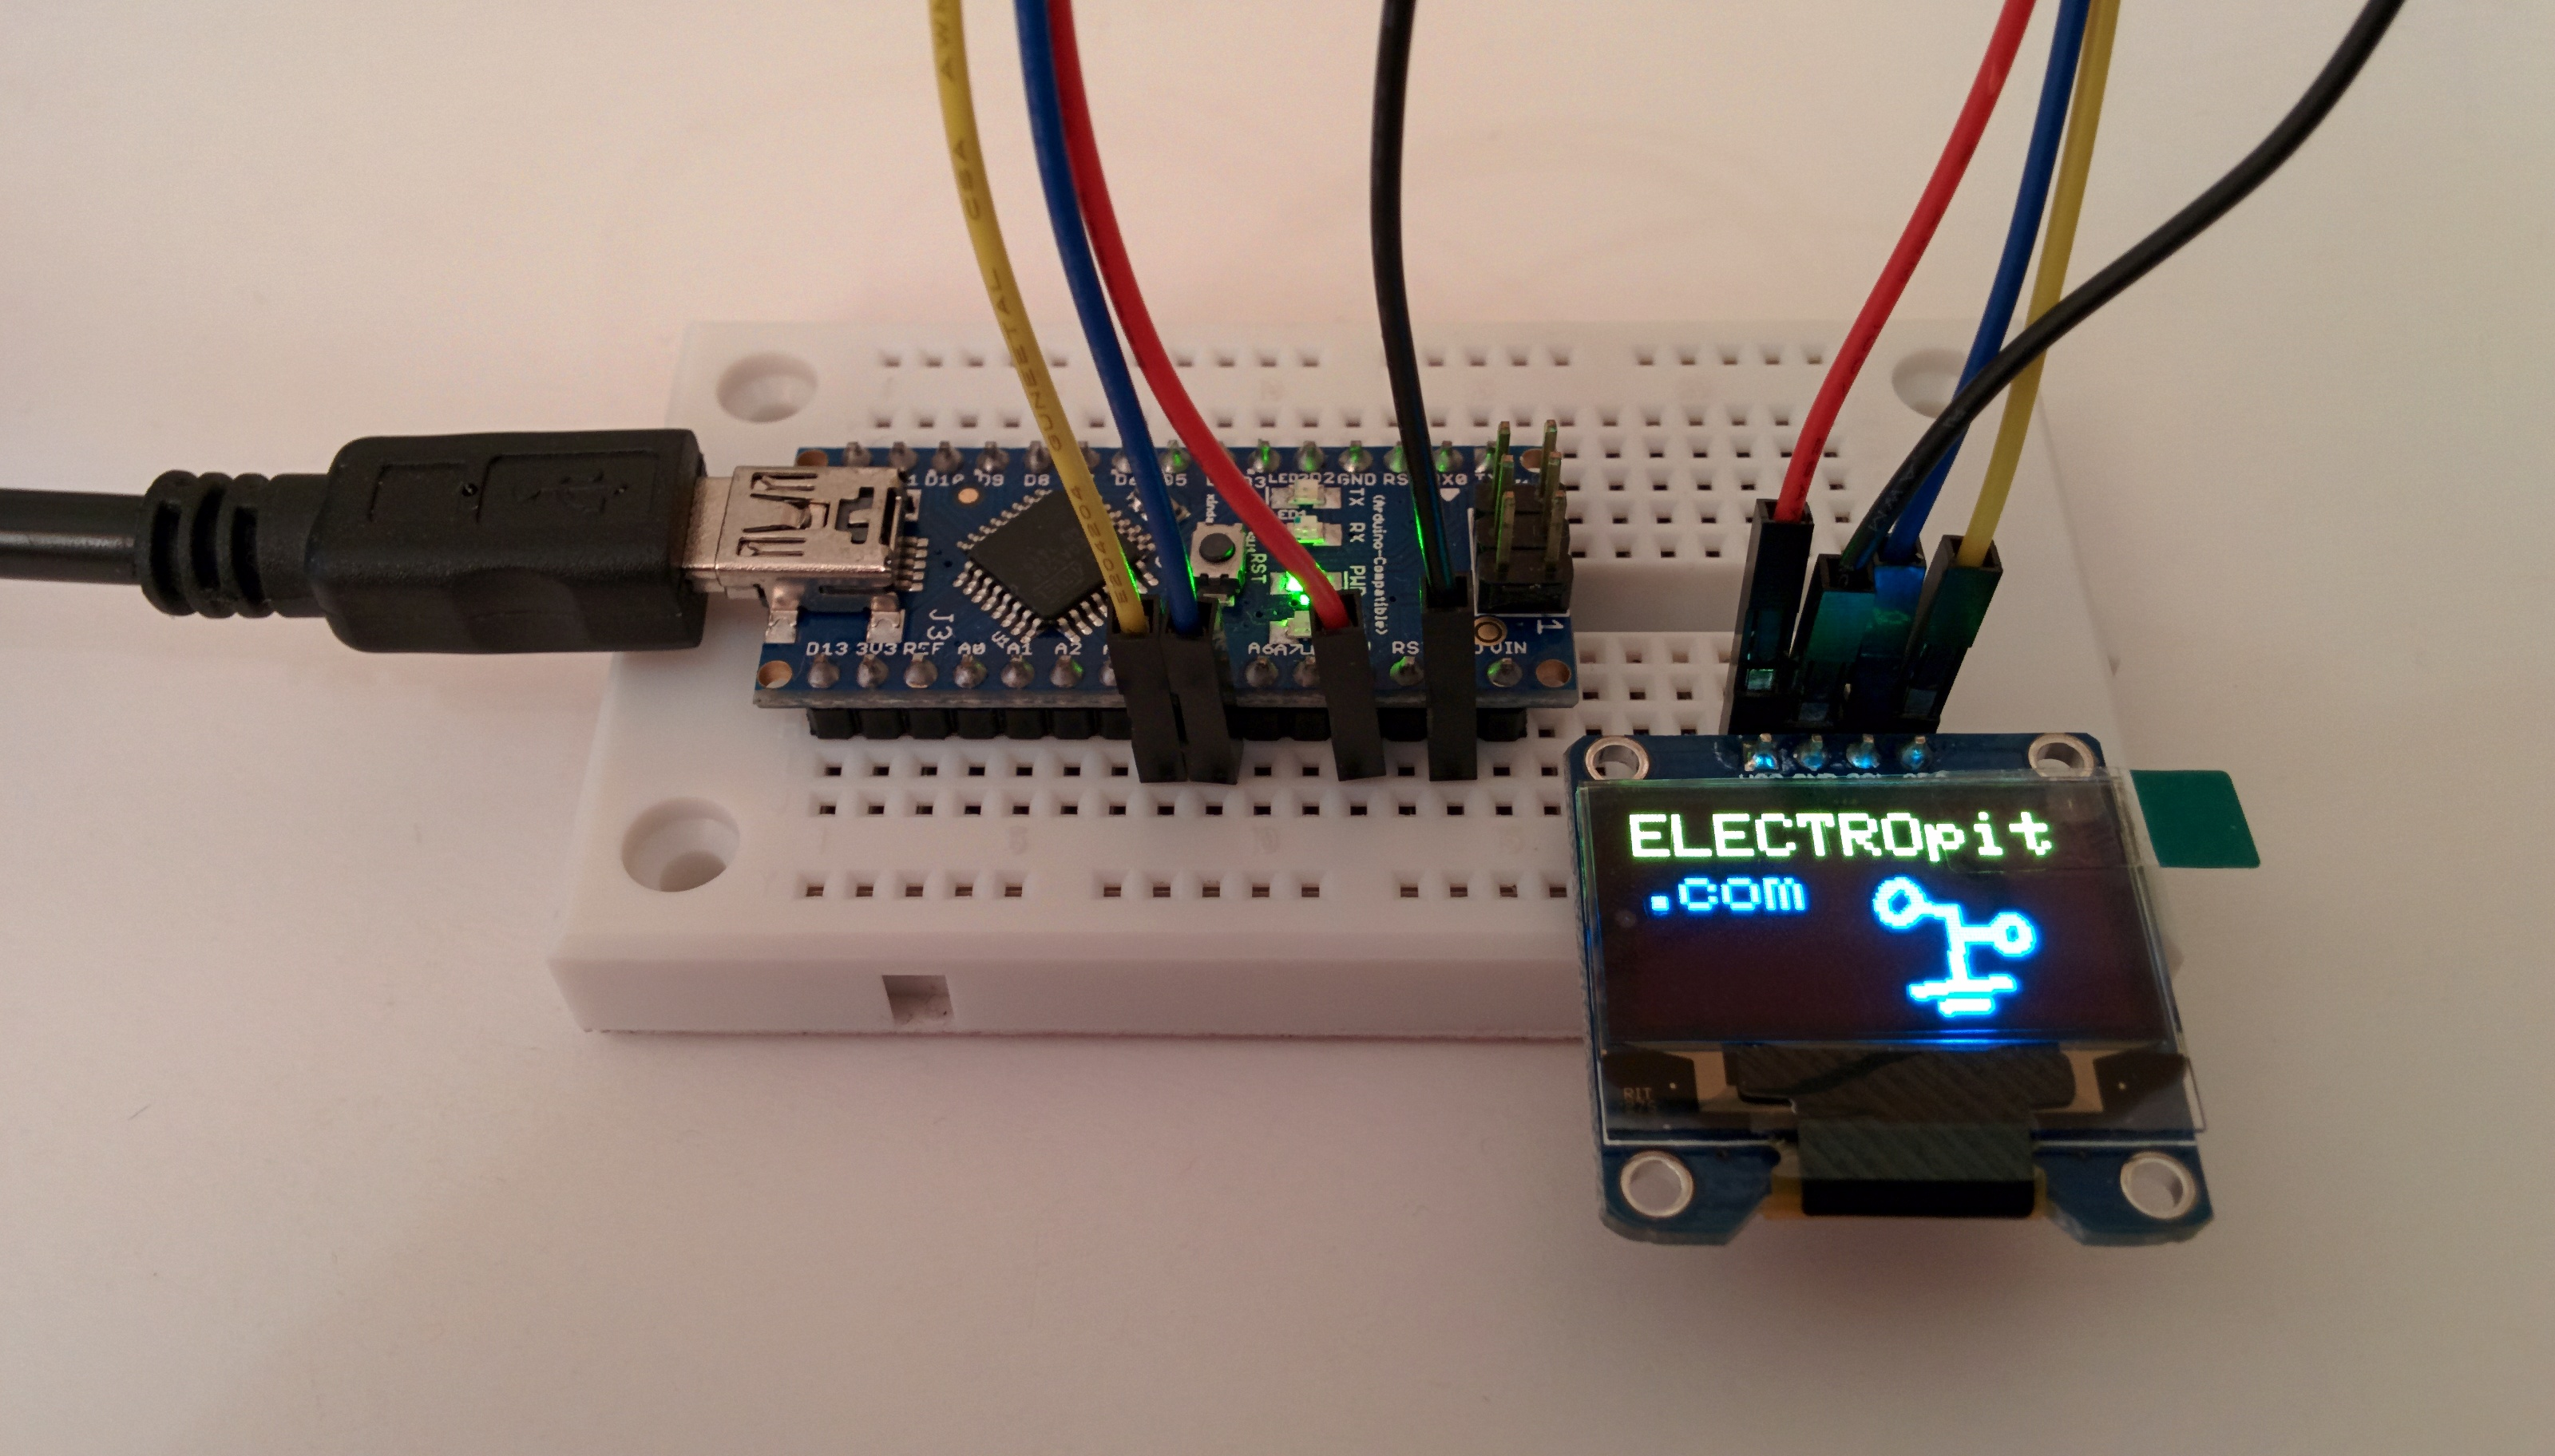 I c oled display how to review electropit